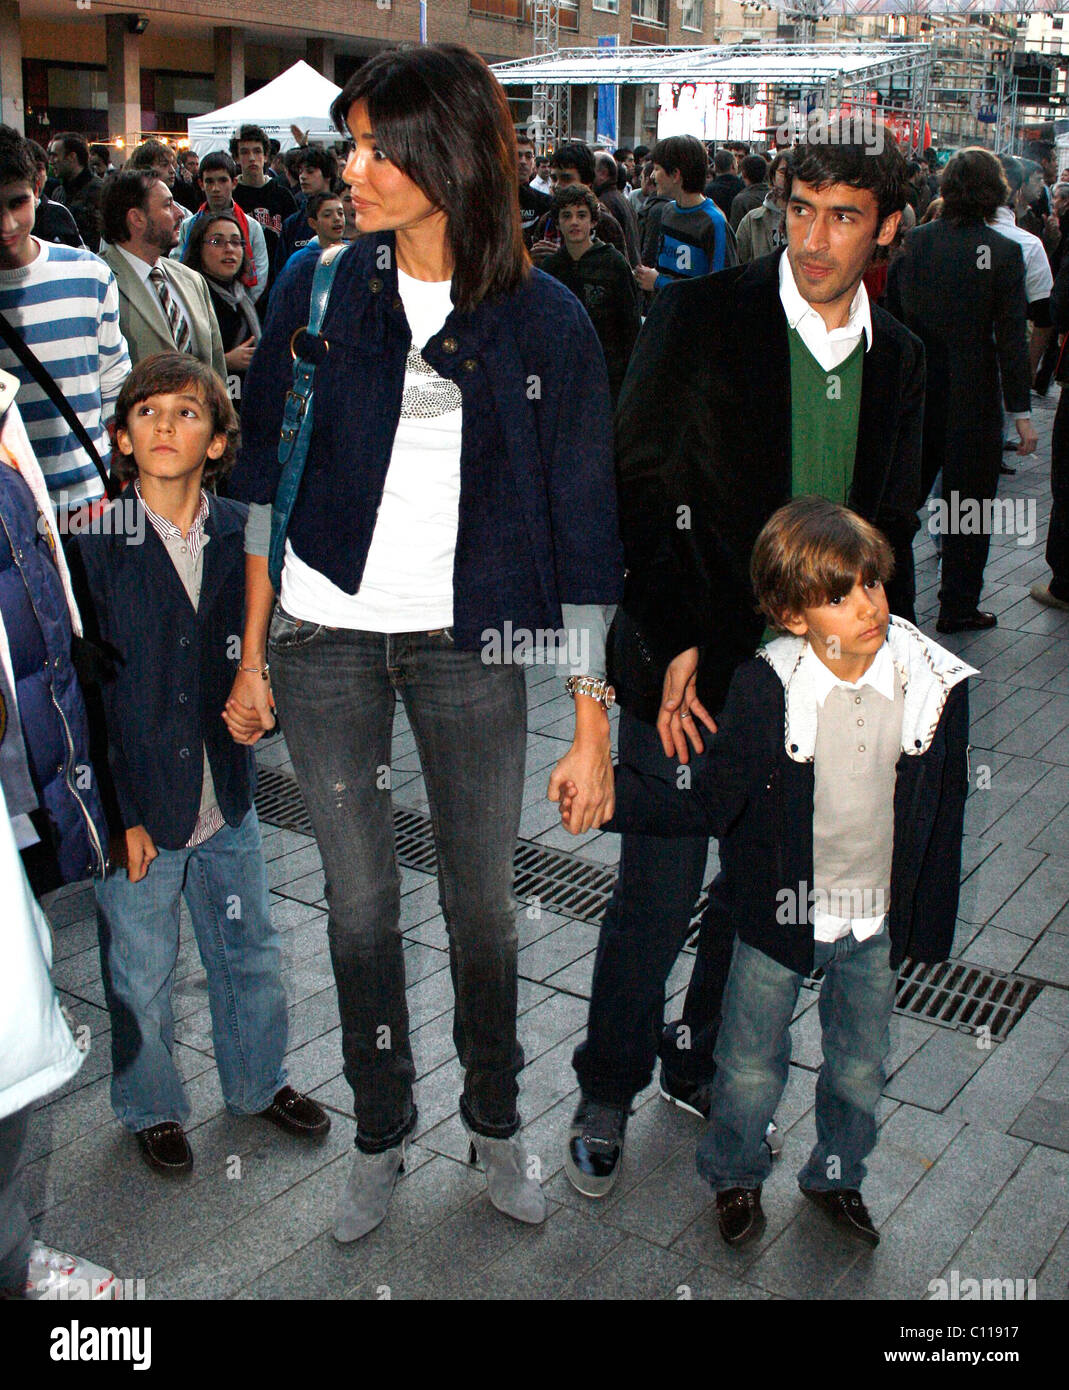 a0776e881 Real Madrid football star Raul and his family attend a basketball game  between Barcelona and Real Madrid Madrid